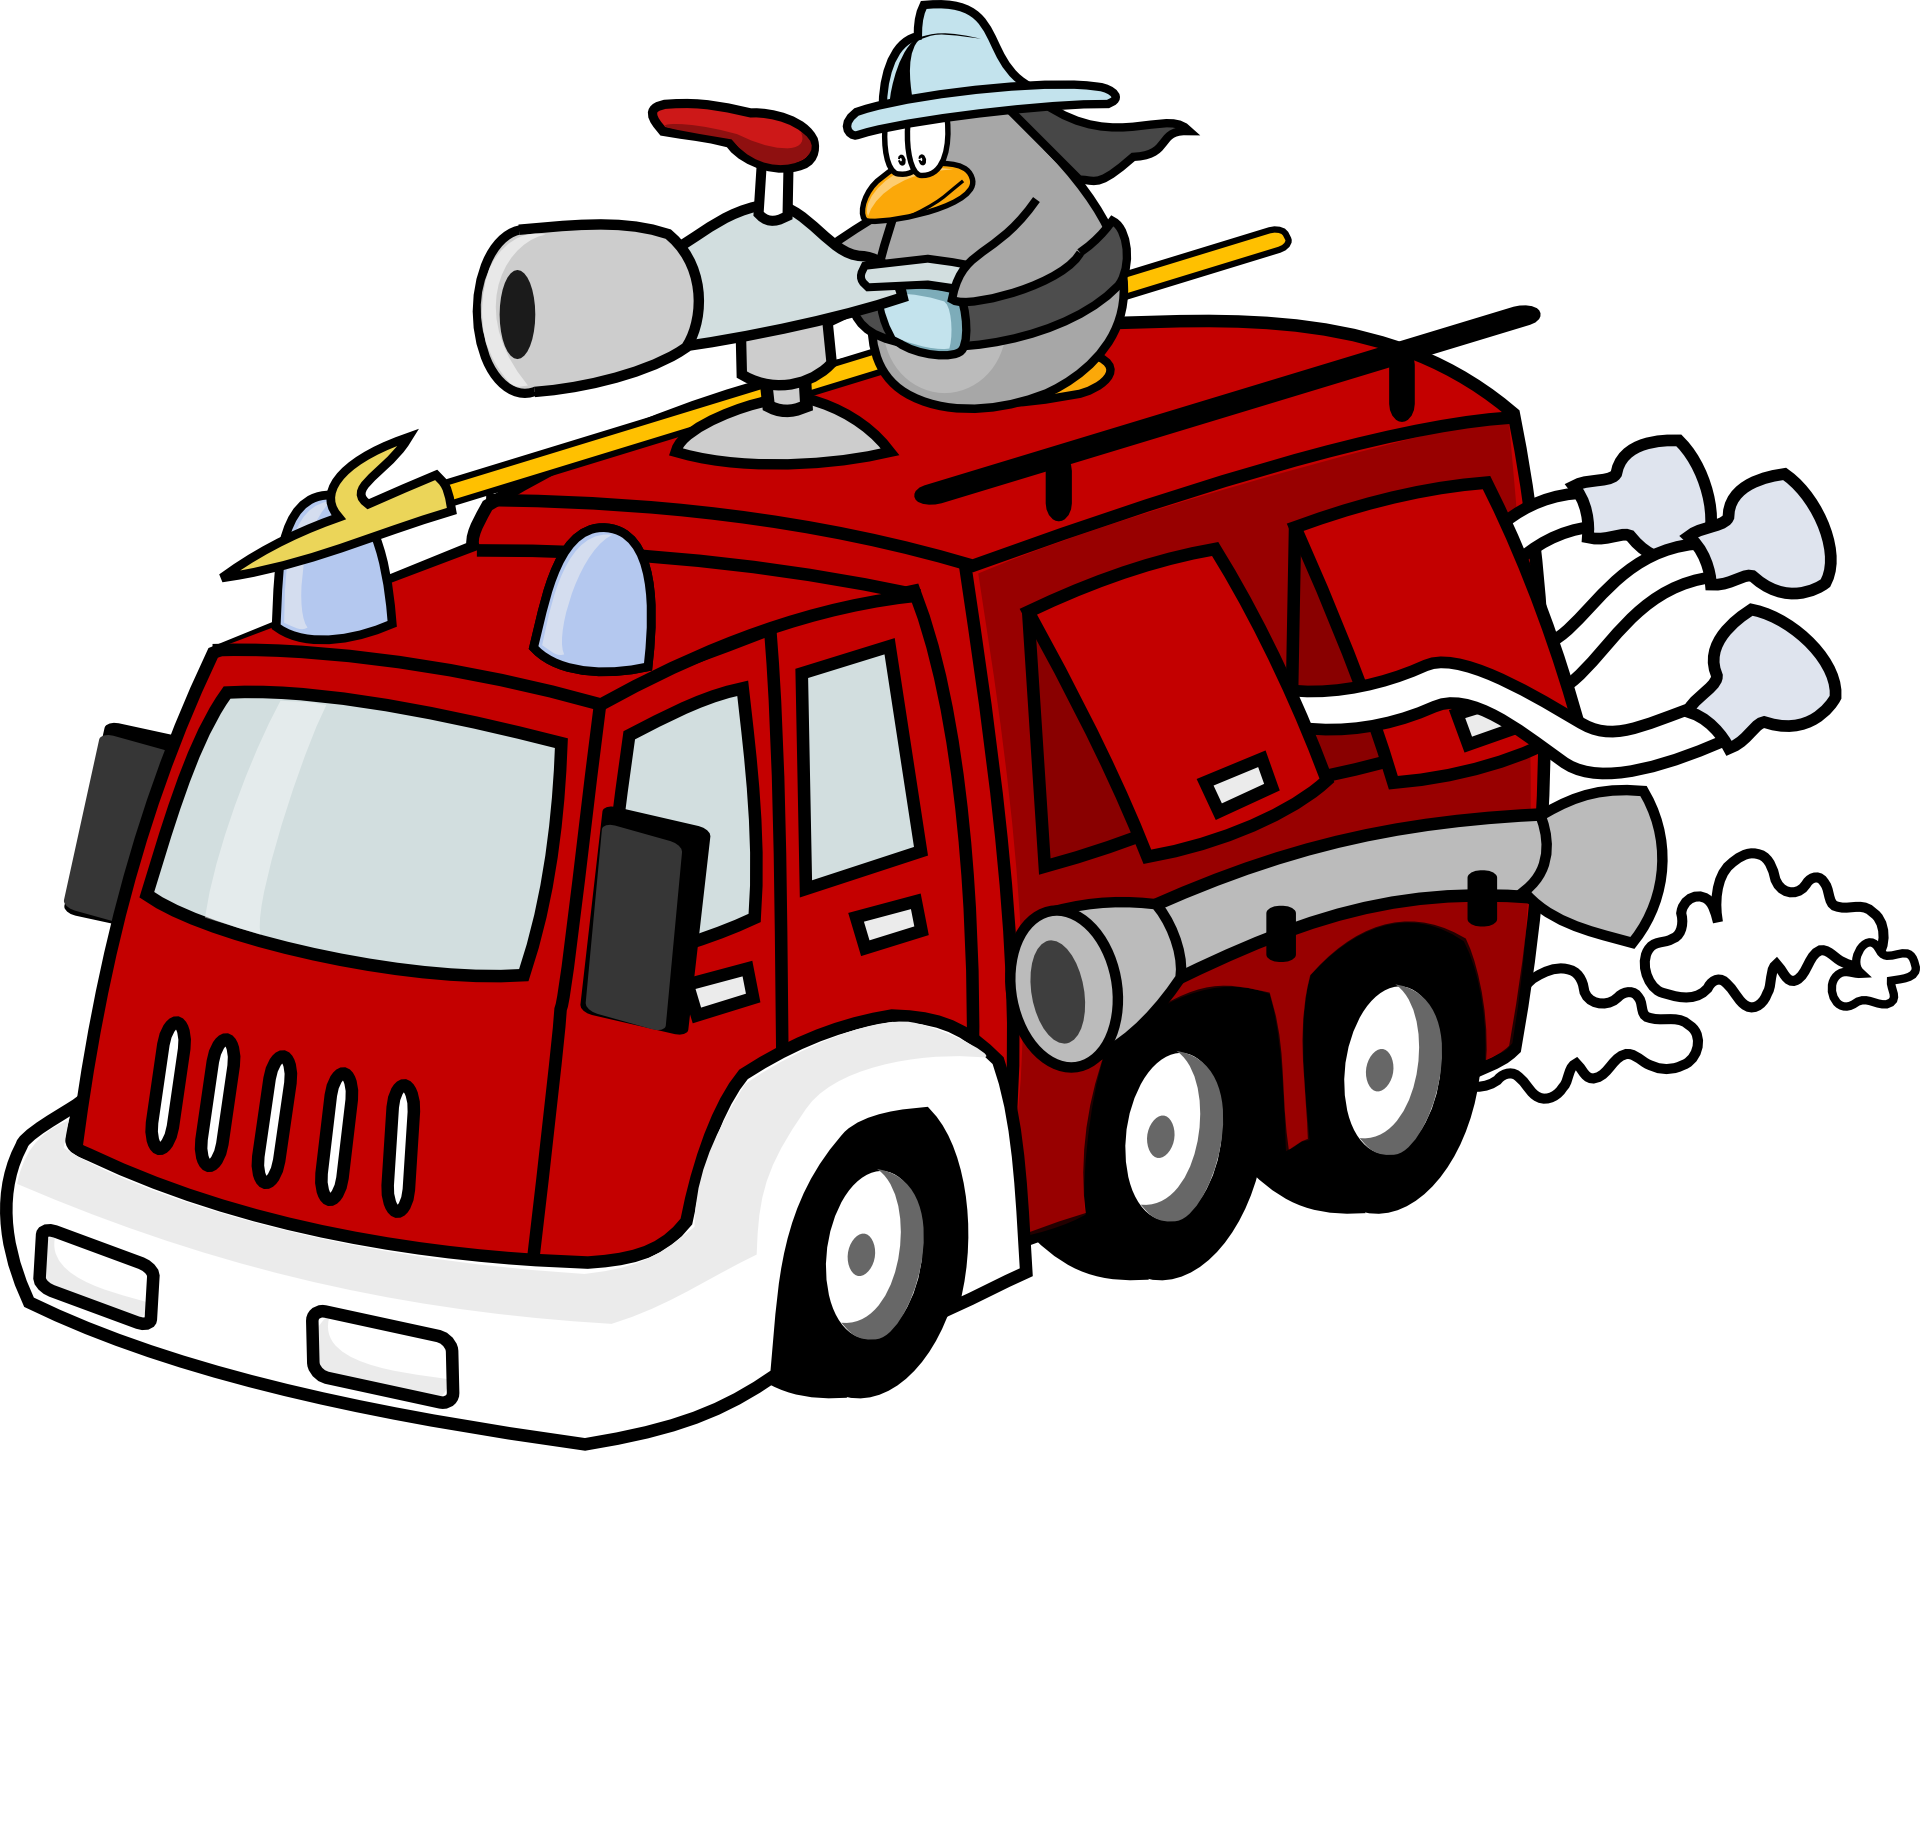 Painted Fire Truck Cartoon On White Background Free Image